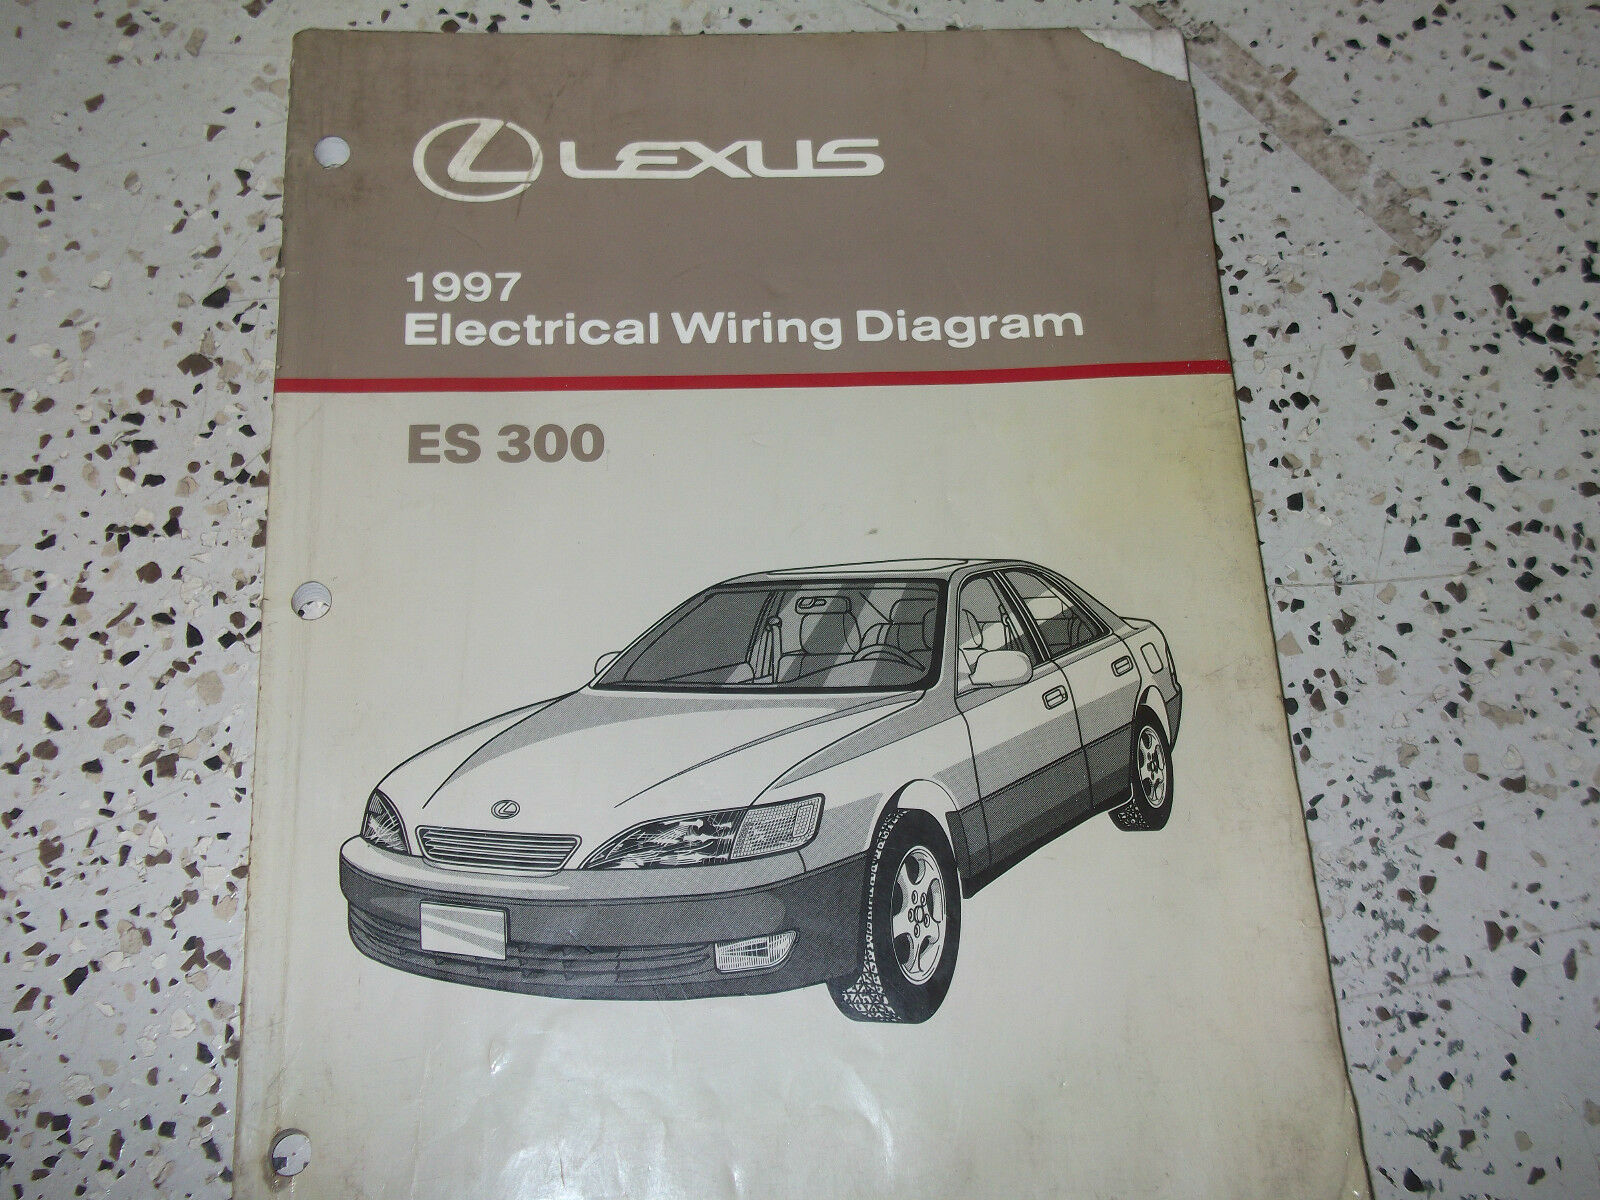 1997 Lexus Es300 Es 300 Electrical Wiring Diagram Service Shop 1992 Toyota Camry Guide Handbook Repair Manual Ewd 1 Of 3only 2 Available